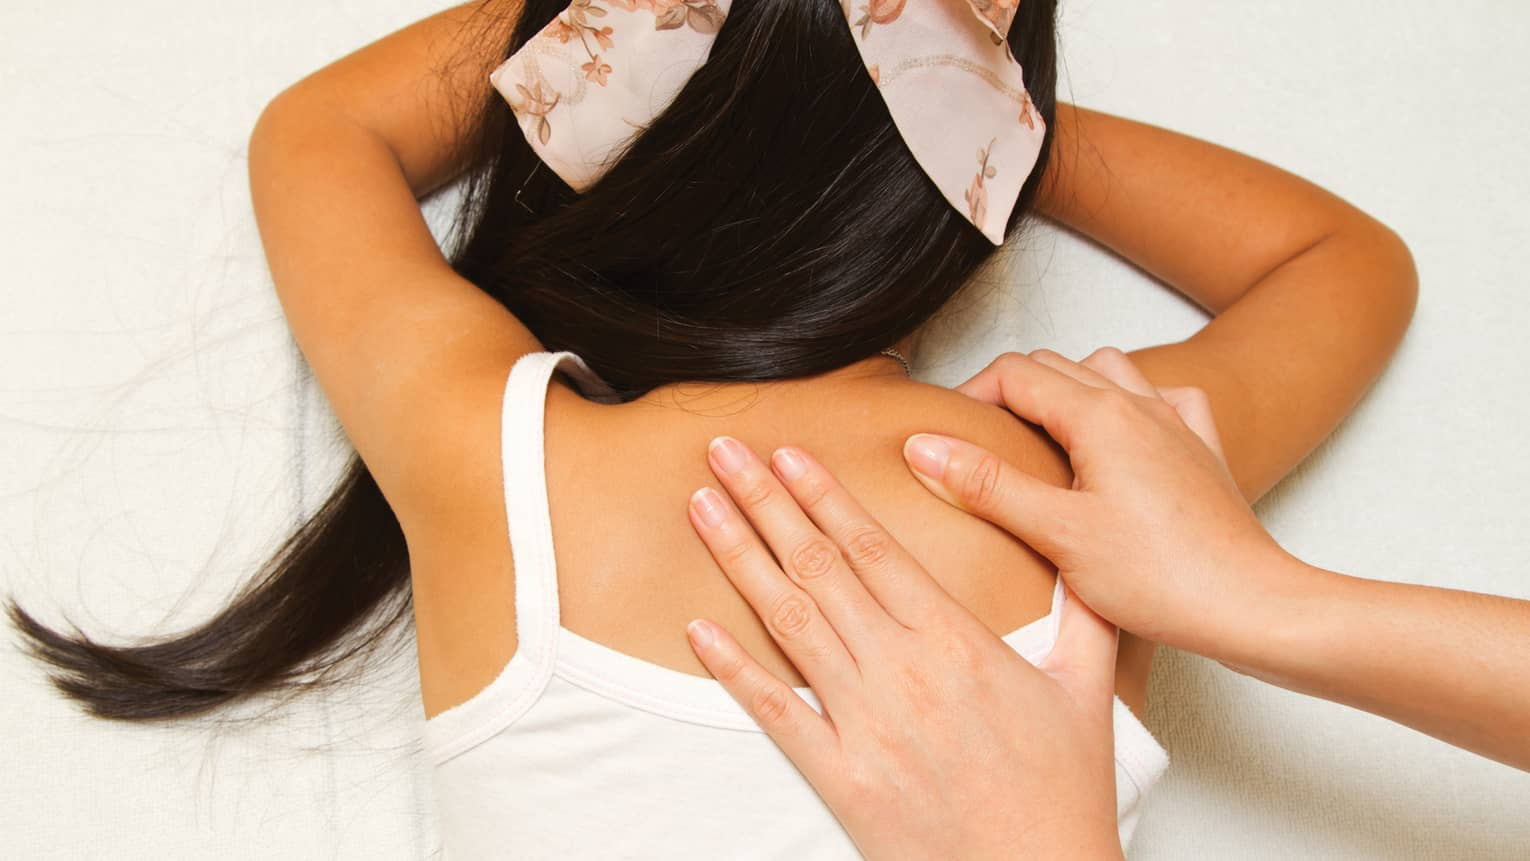 Masseuse hands massage girl's shoulders